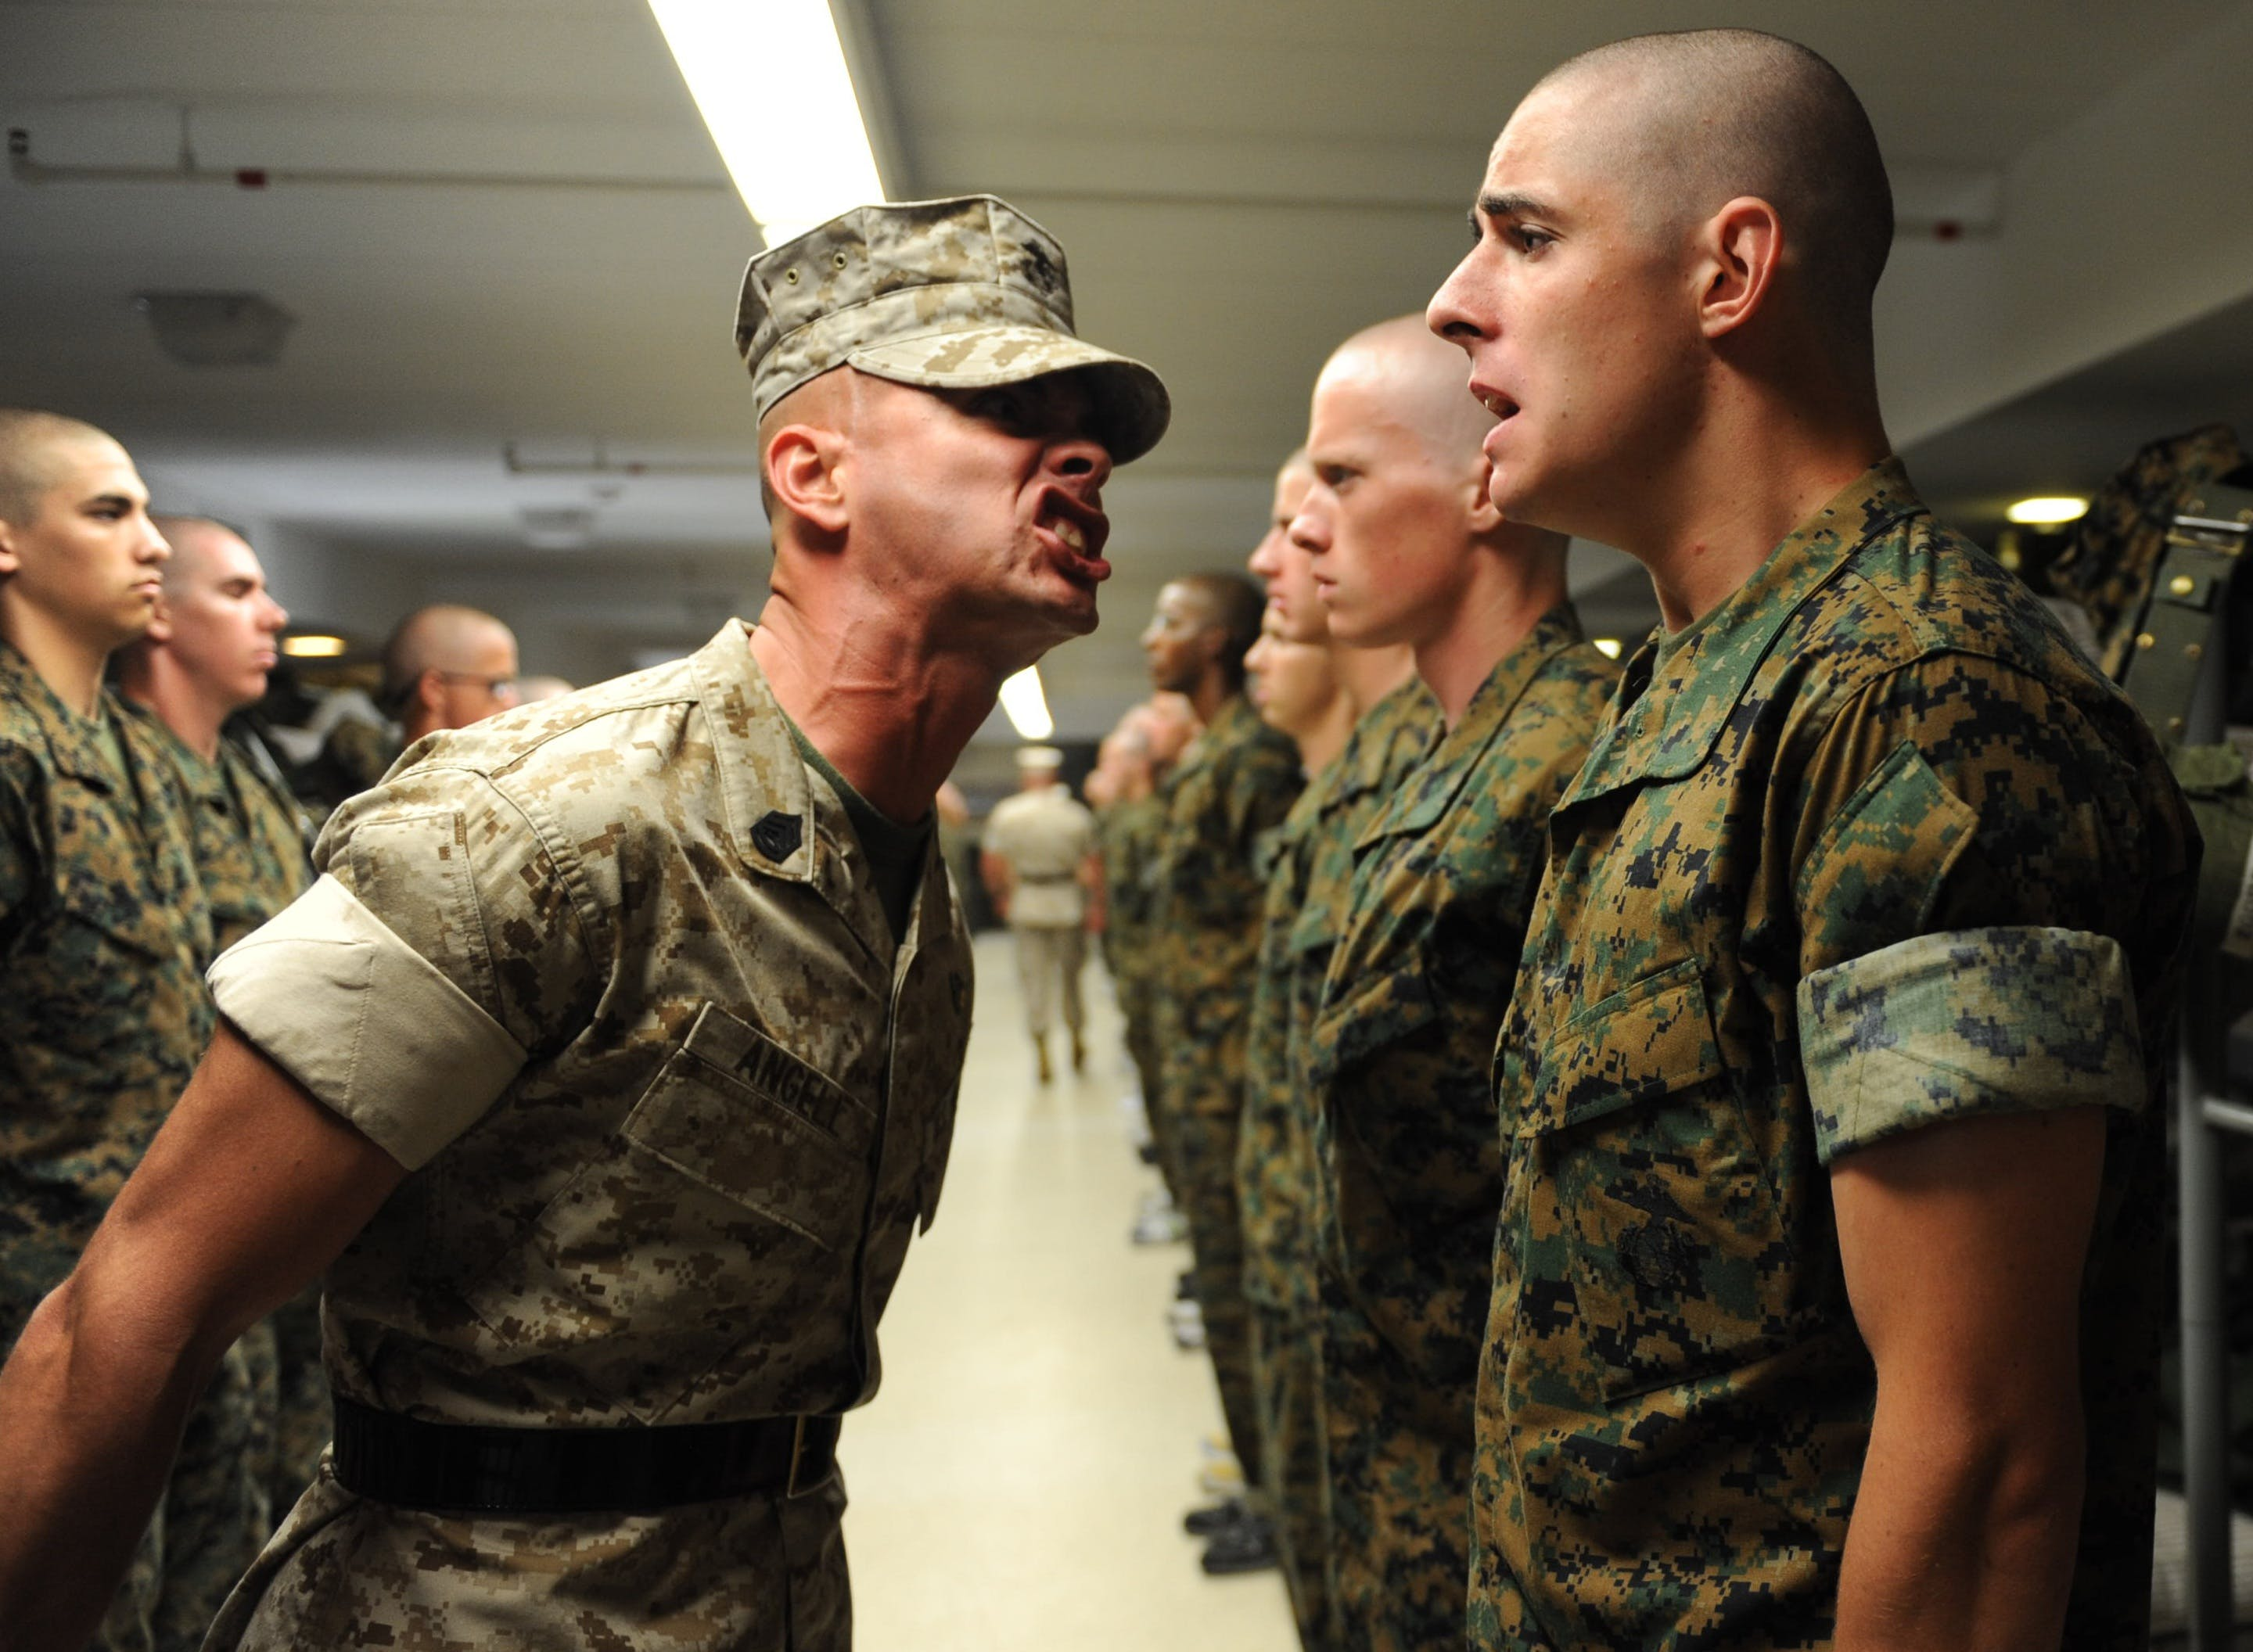 army, authority, drill instructor